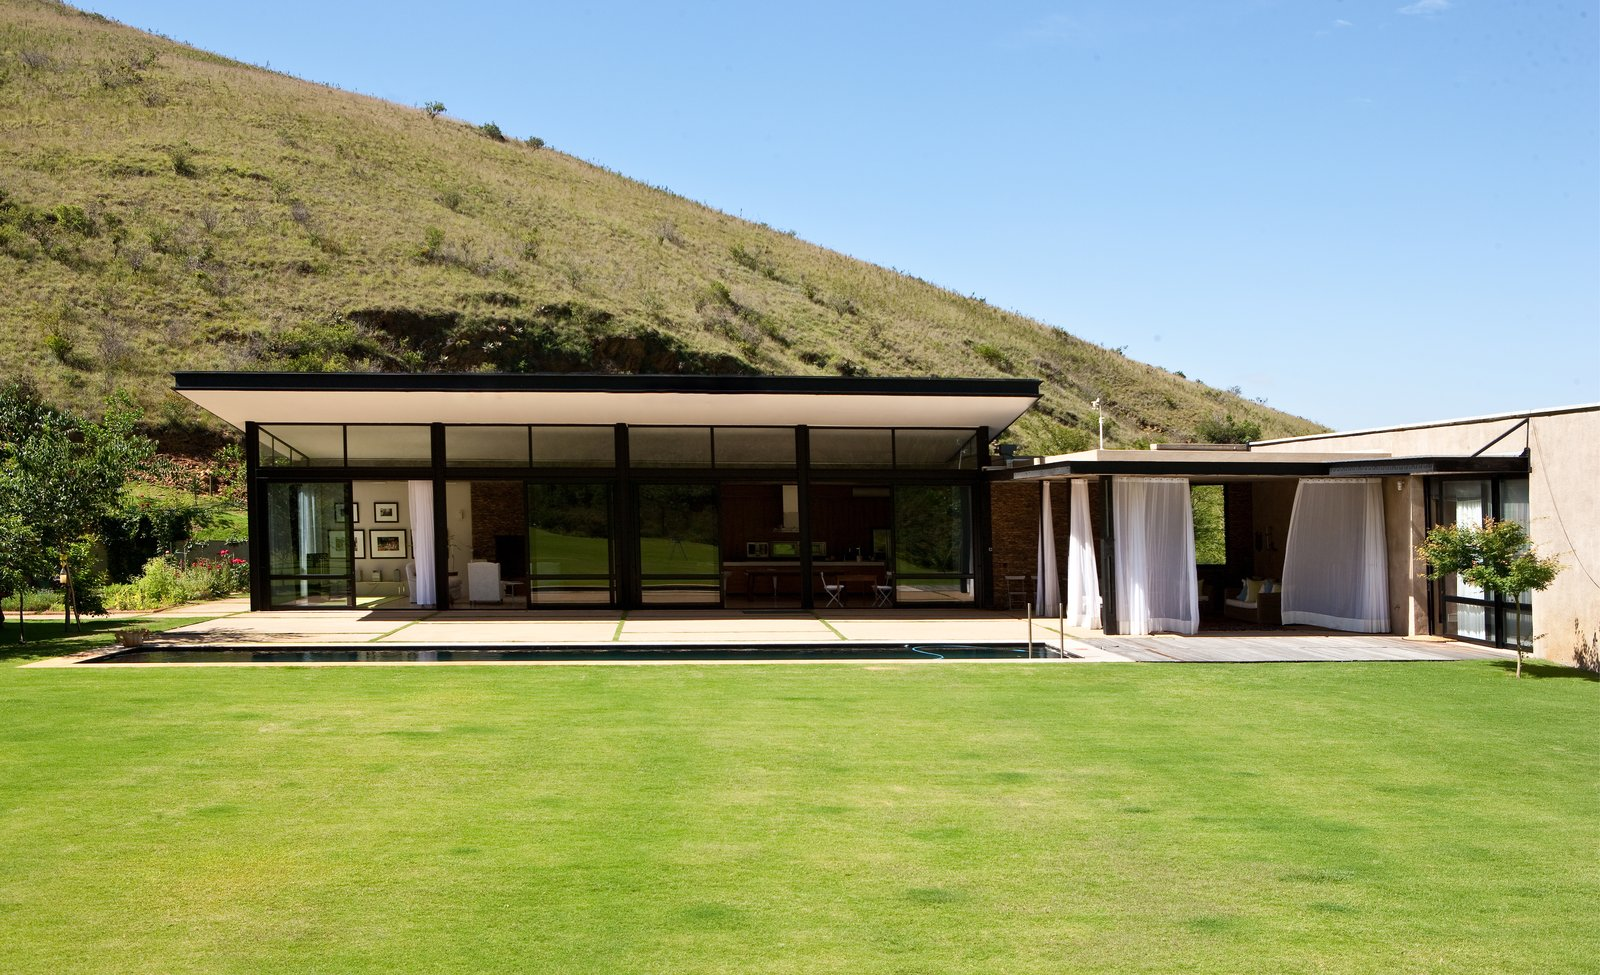 Outdoor, Grass, Back Yard, Large Patio, Porch, Deck, and Shrubs Herman and van Gass chose only natural materials like glass, steel, and stone, and designed the house to harvest its own water supply.  Photo 2 of 9 in This South African Villa Lets You Bask in Divine Views